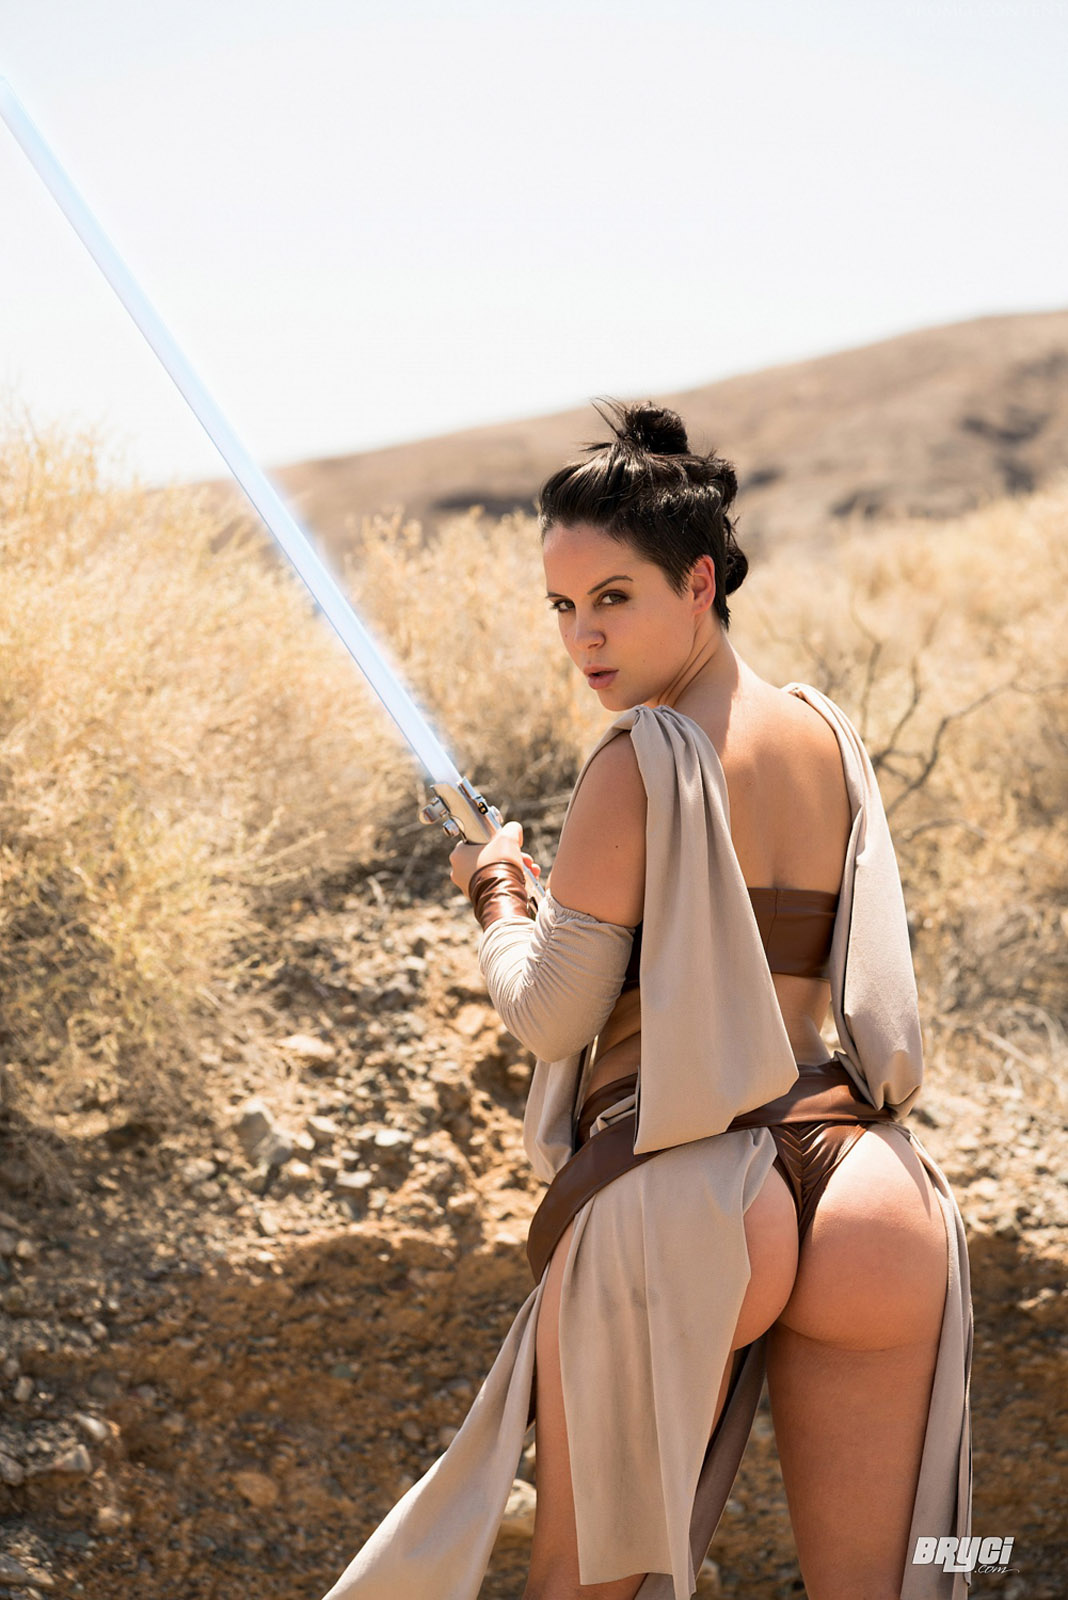 Sorry, that Star wars hot nude